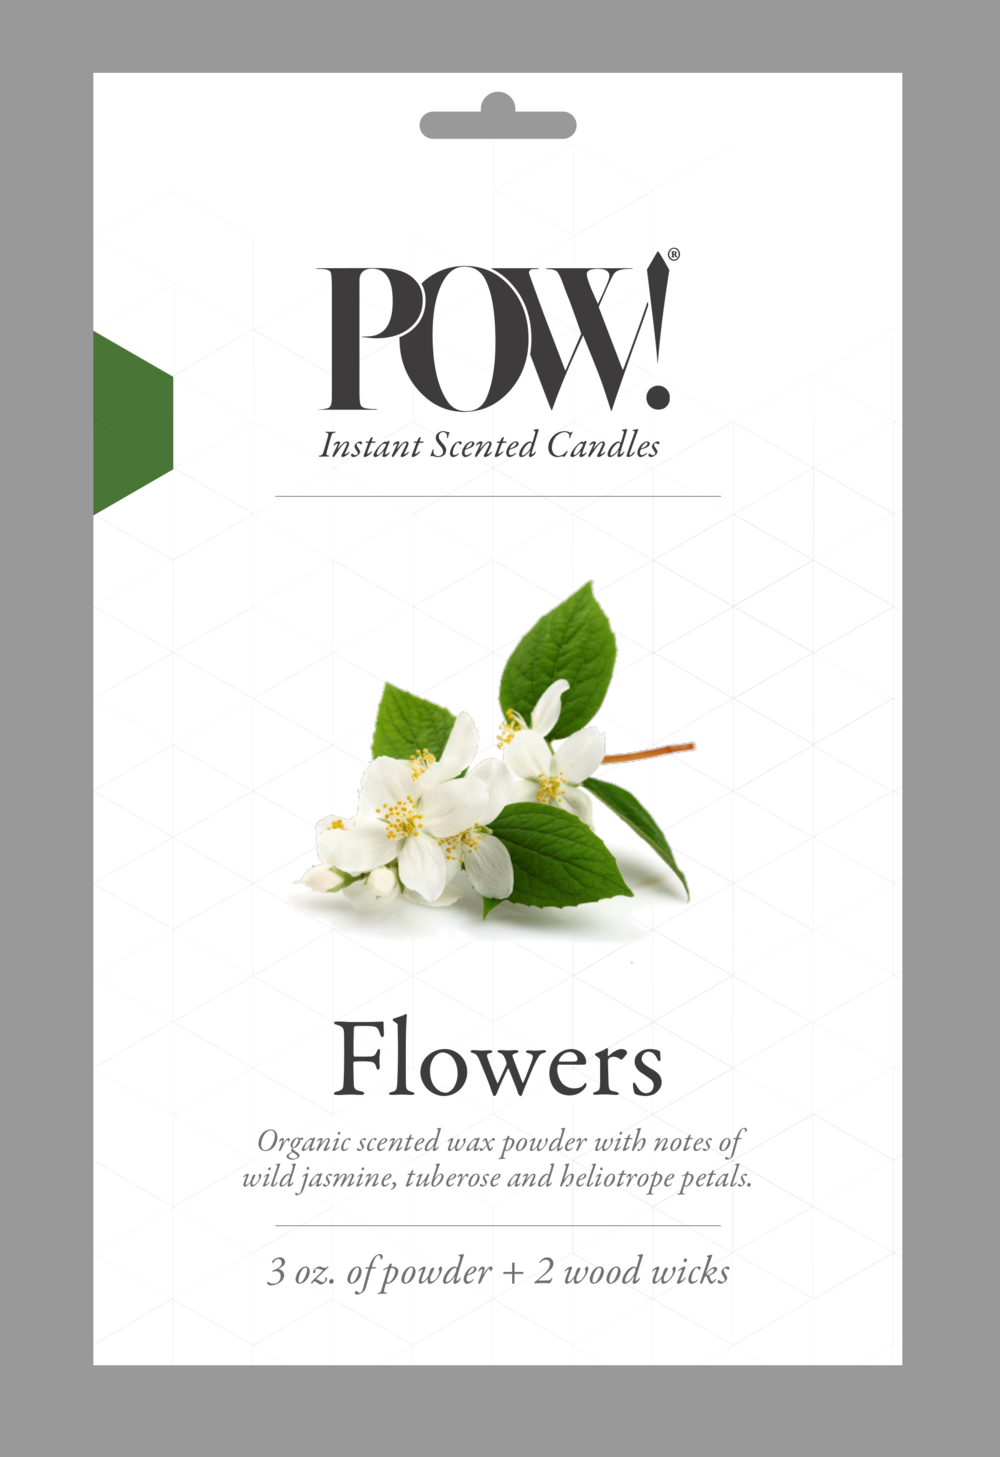 pow_pouch_flowers.png